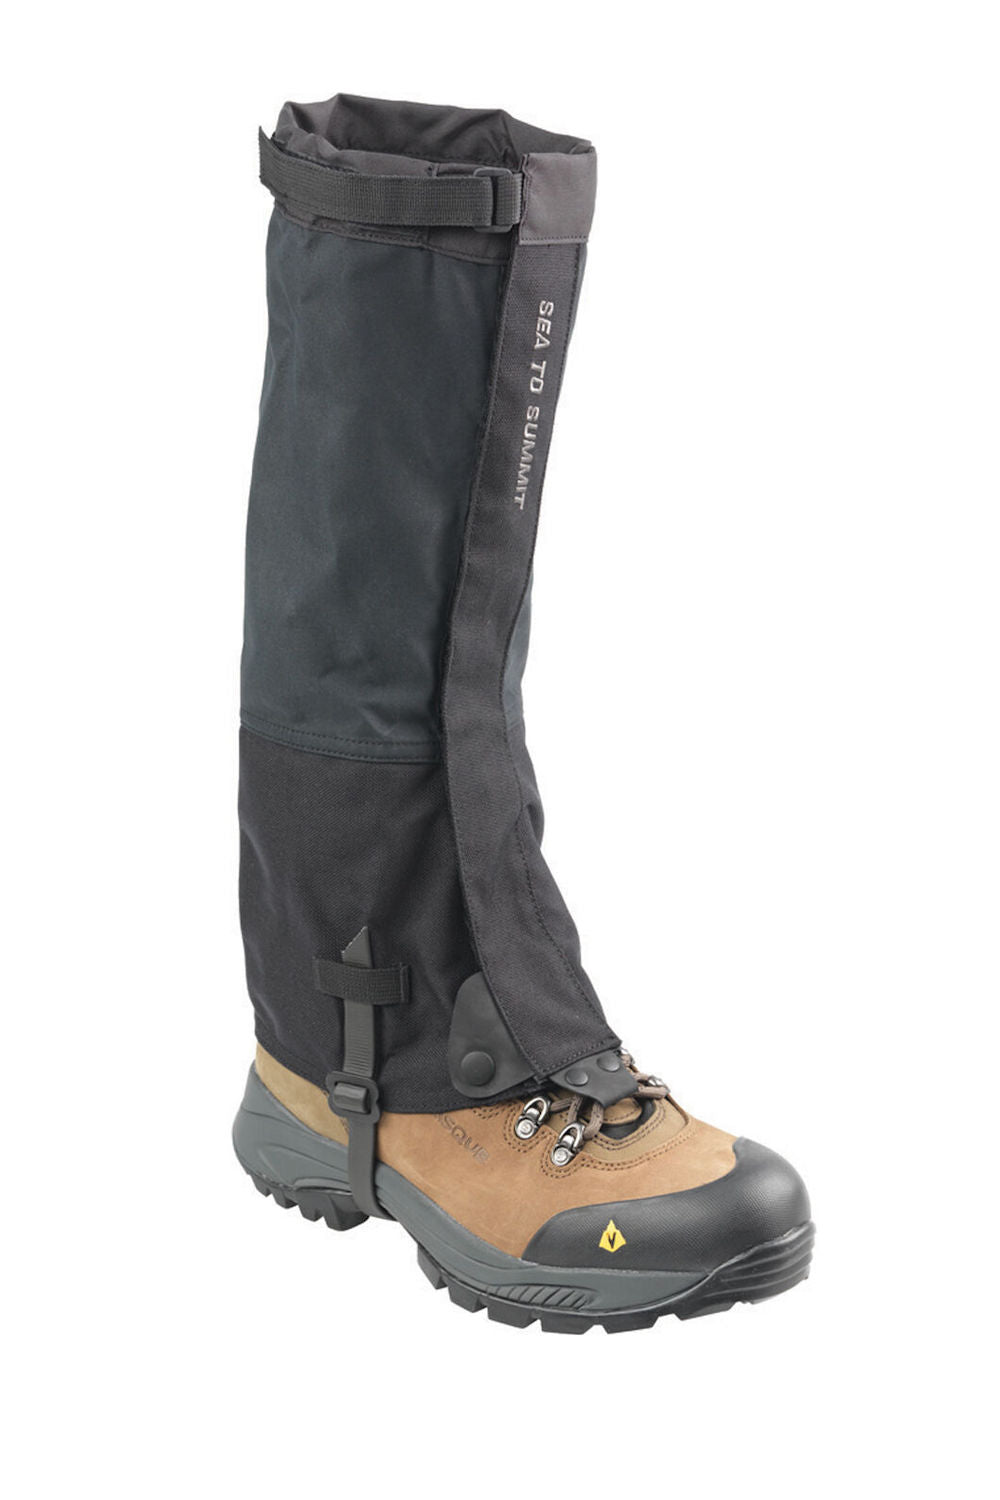 Sea to Summit Canvas Quagmire Gaiters